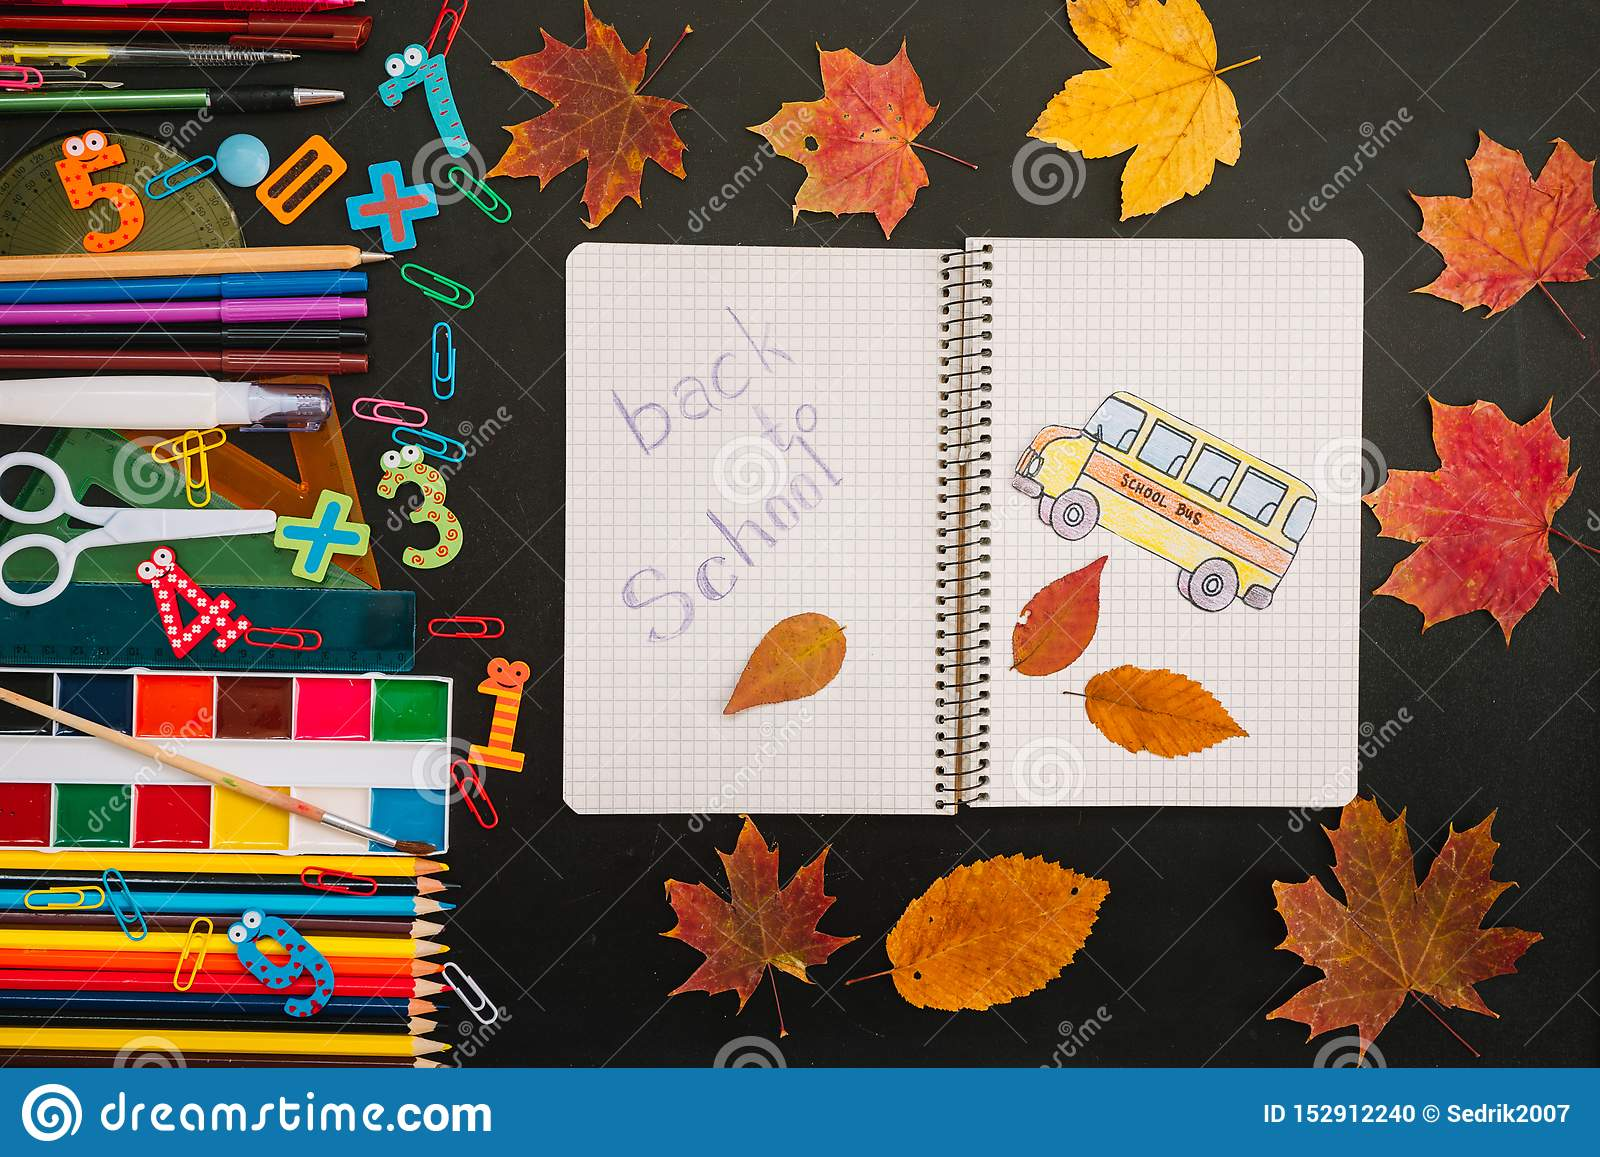 Back to school concept. School and office supplies on blackboard background